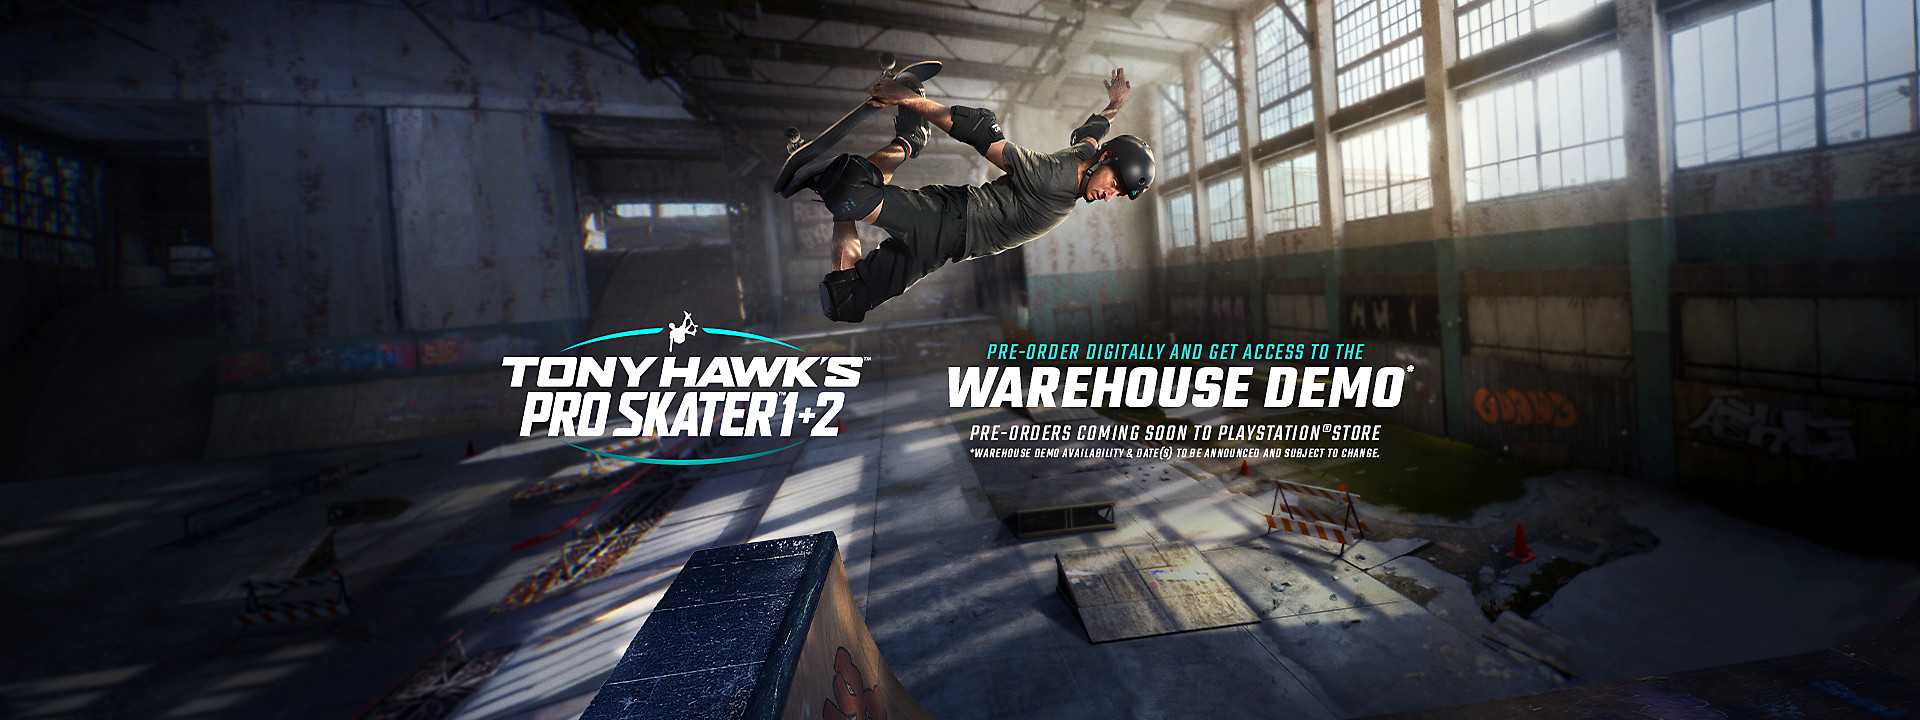 Tony Hawk's Pro Skater 1 + 2 - Pre-Orders Coming Soon